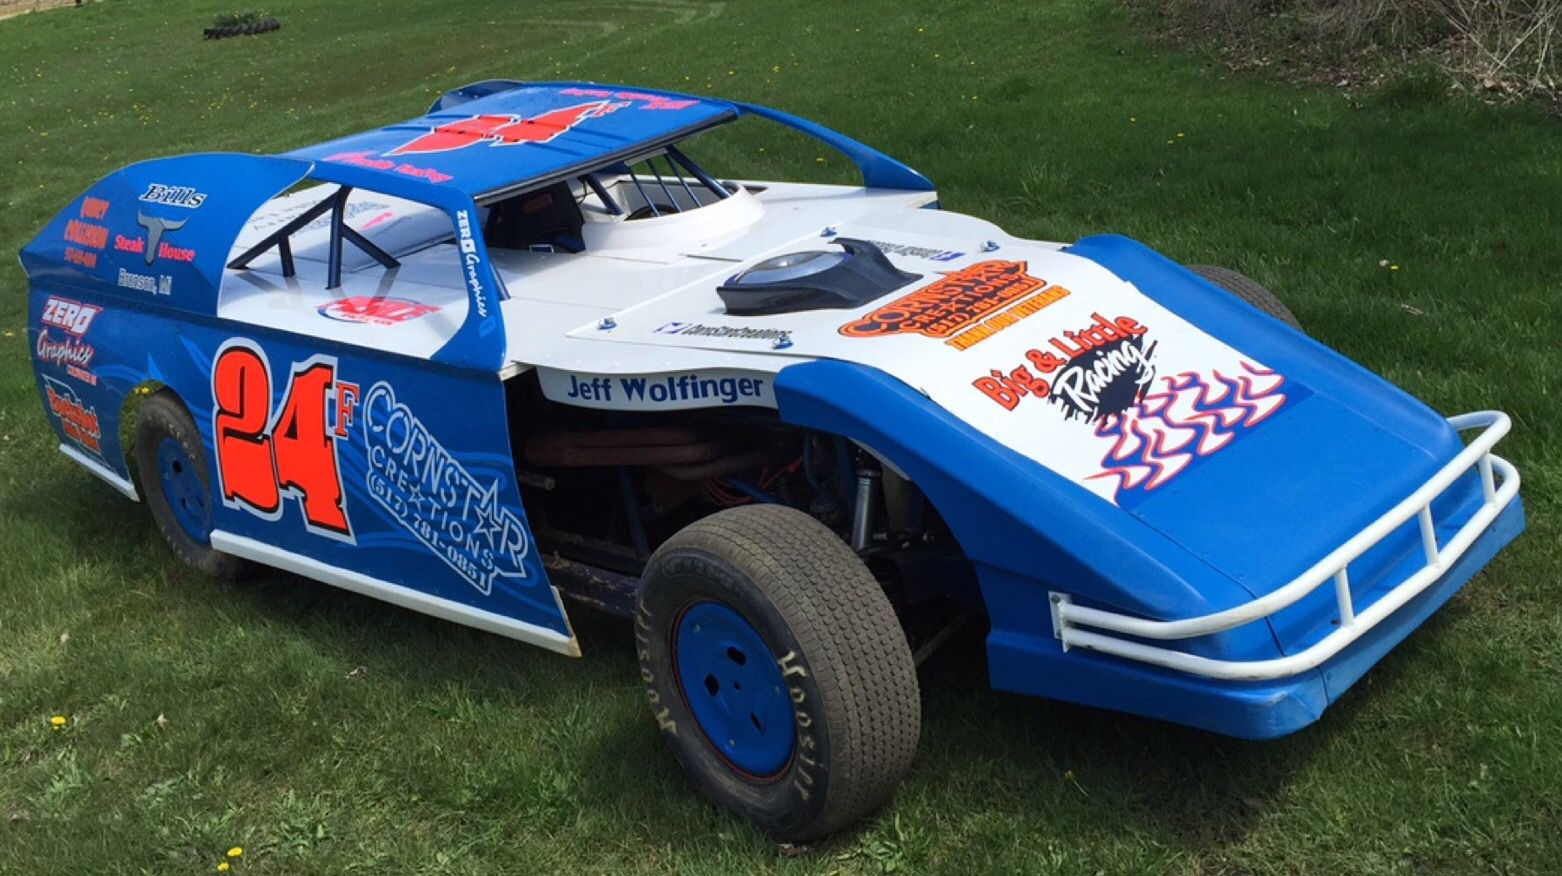 CornStar creations modified race car out of Coldwater